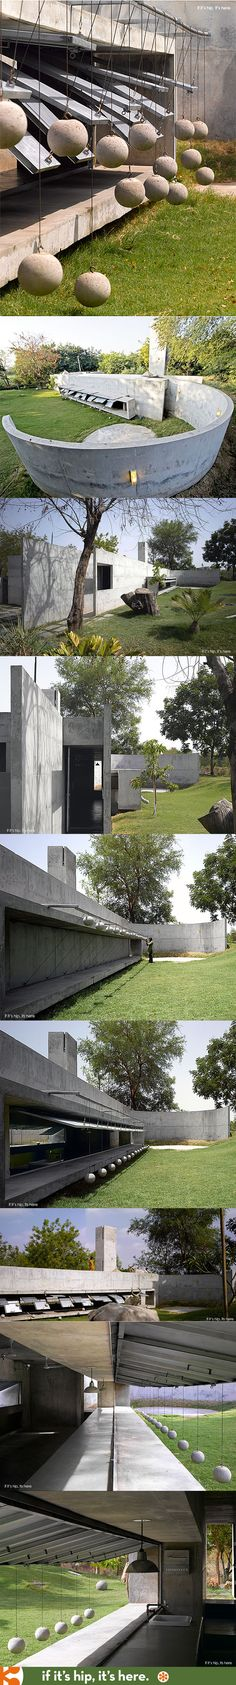 "India's ""House With Balls"" is a modern concrete weekend retreat and fish farm."